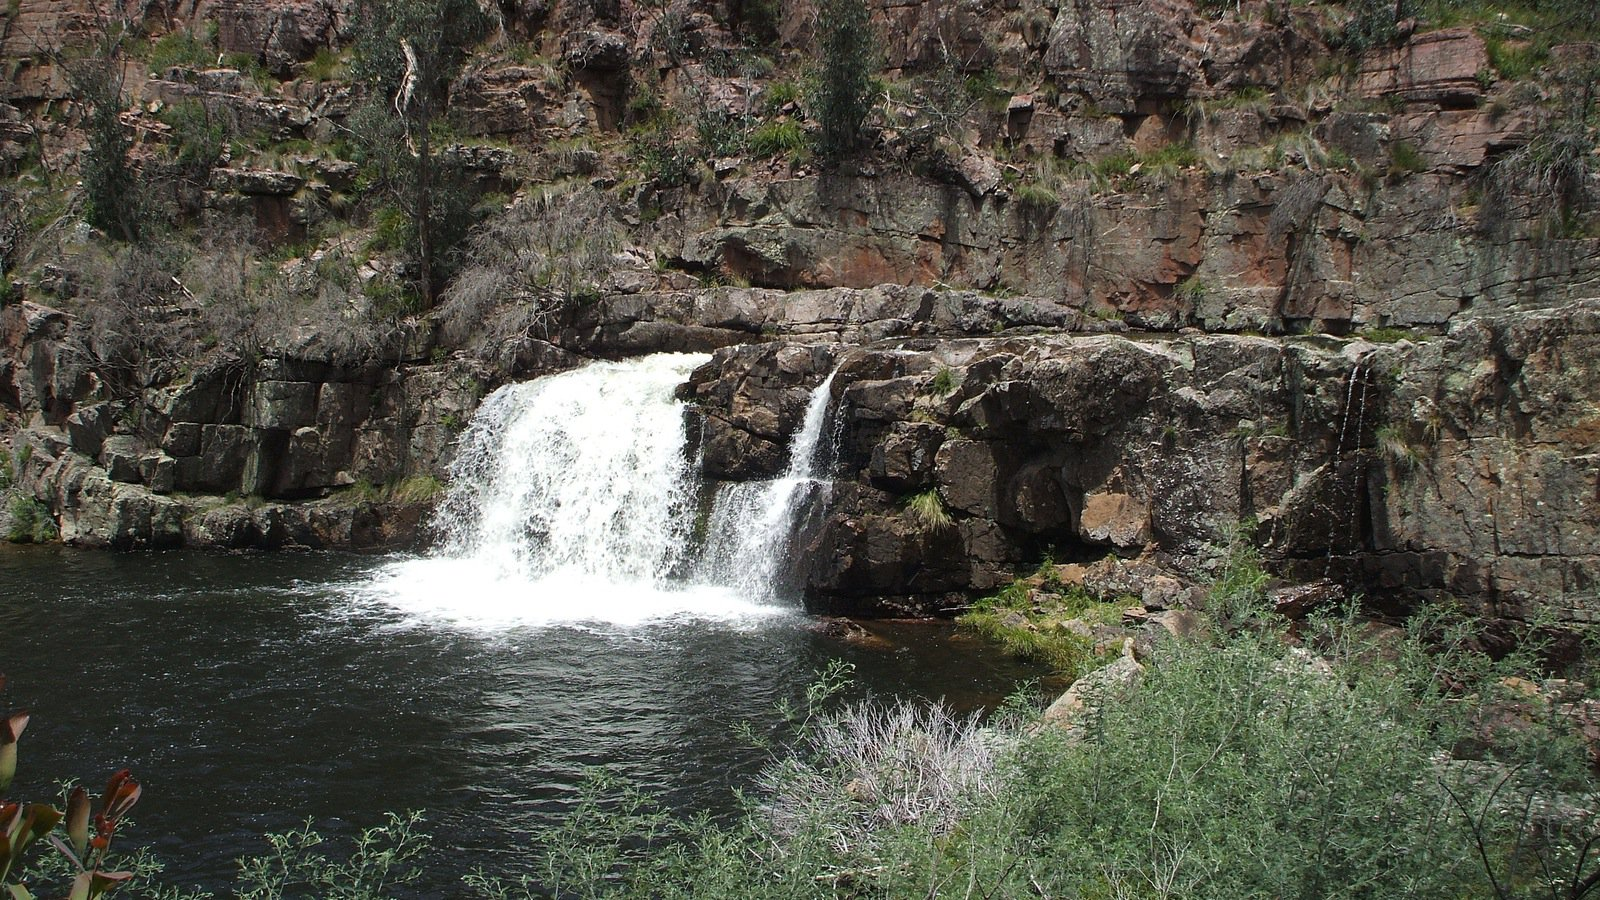 Waterfalls - Moroka Falls, Alpine National Park